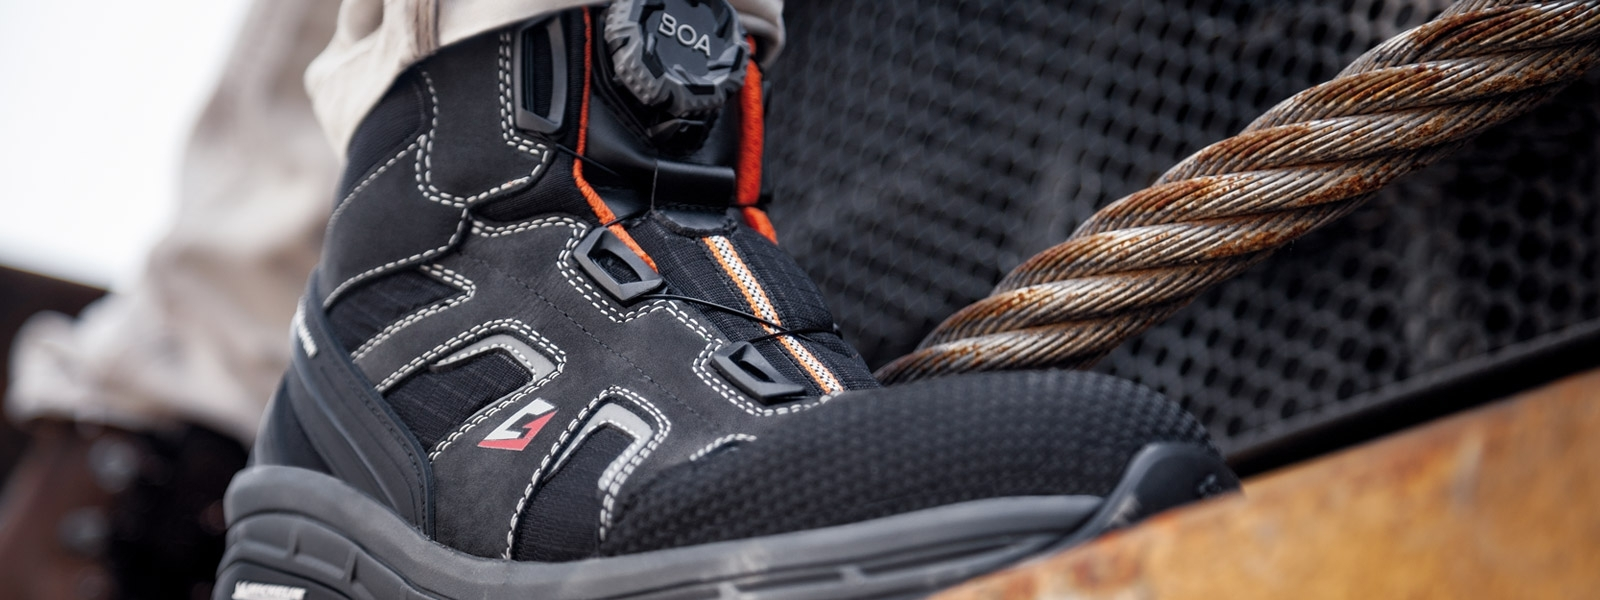 Garsport safety shoes, your safe work shoes